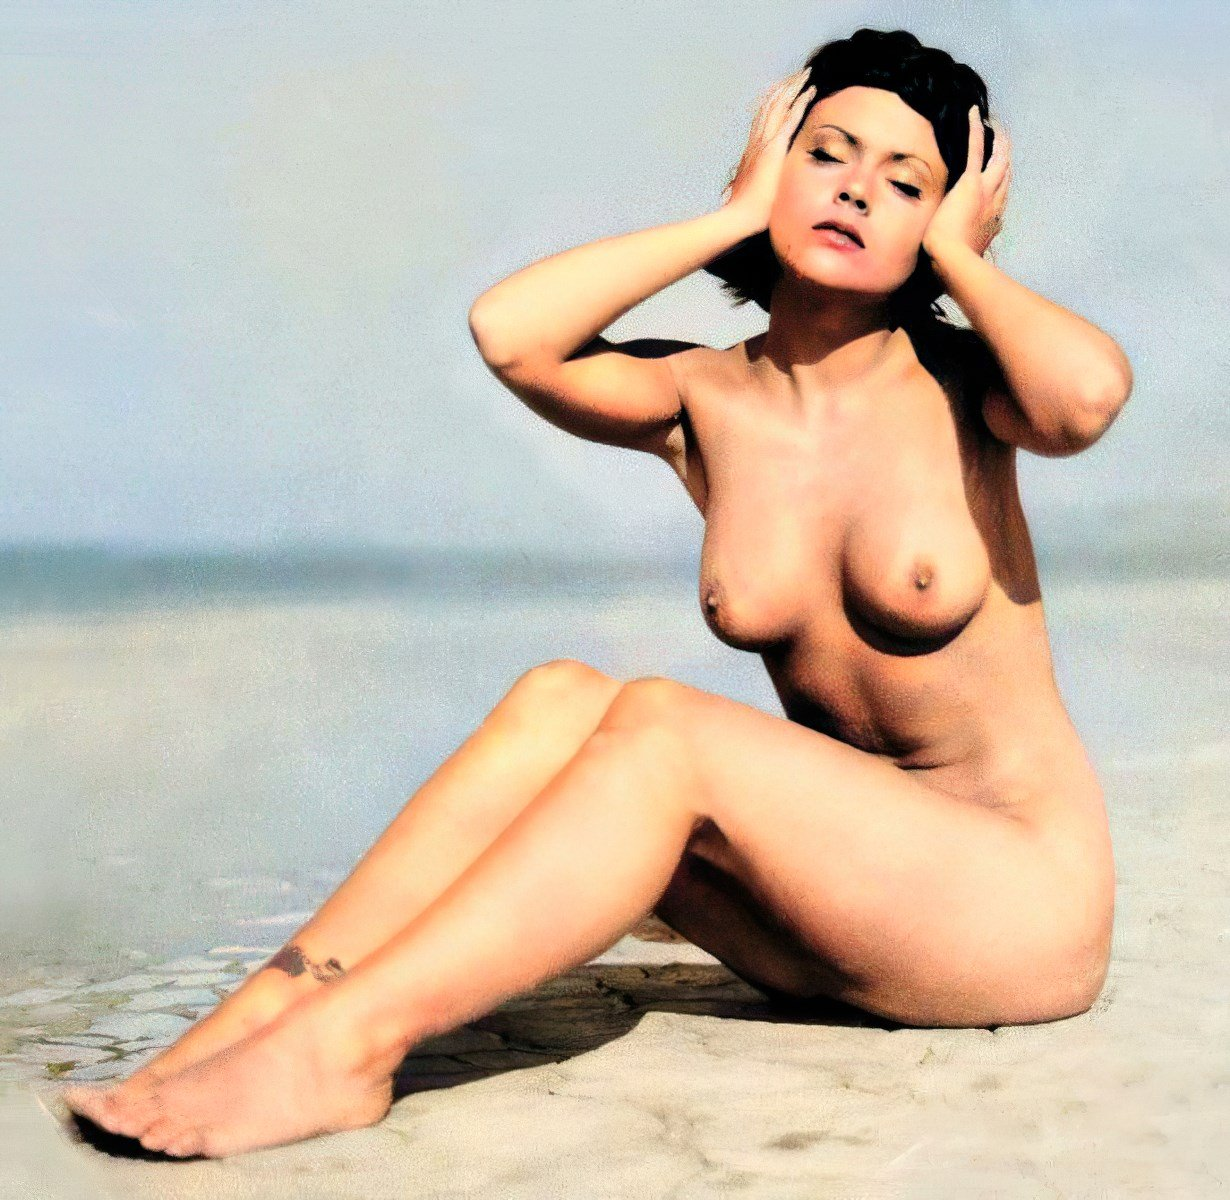 Alyssa Milano Nude Photo Shoot At 18-Years-Old Colorized And Enhanced